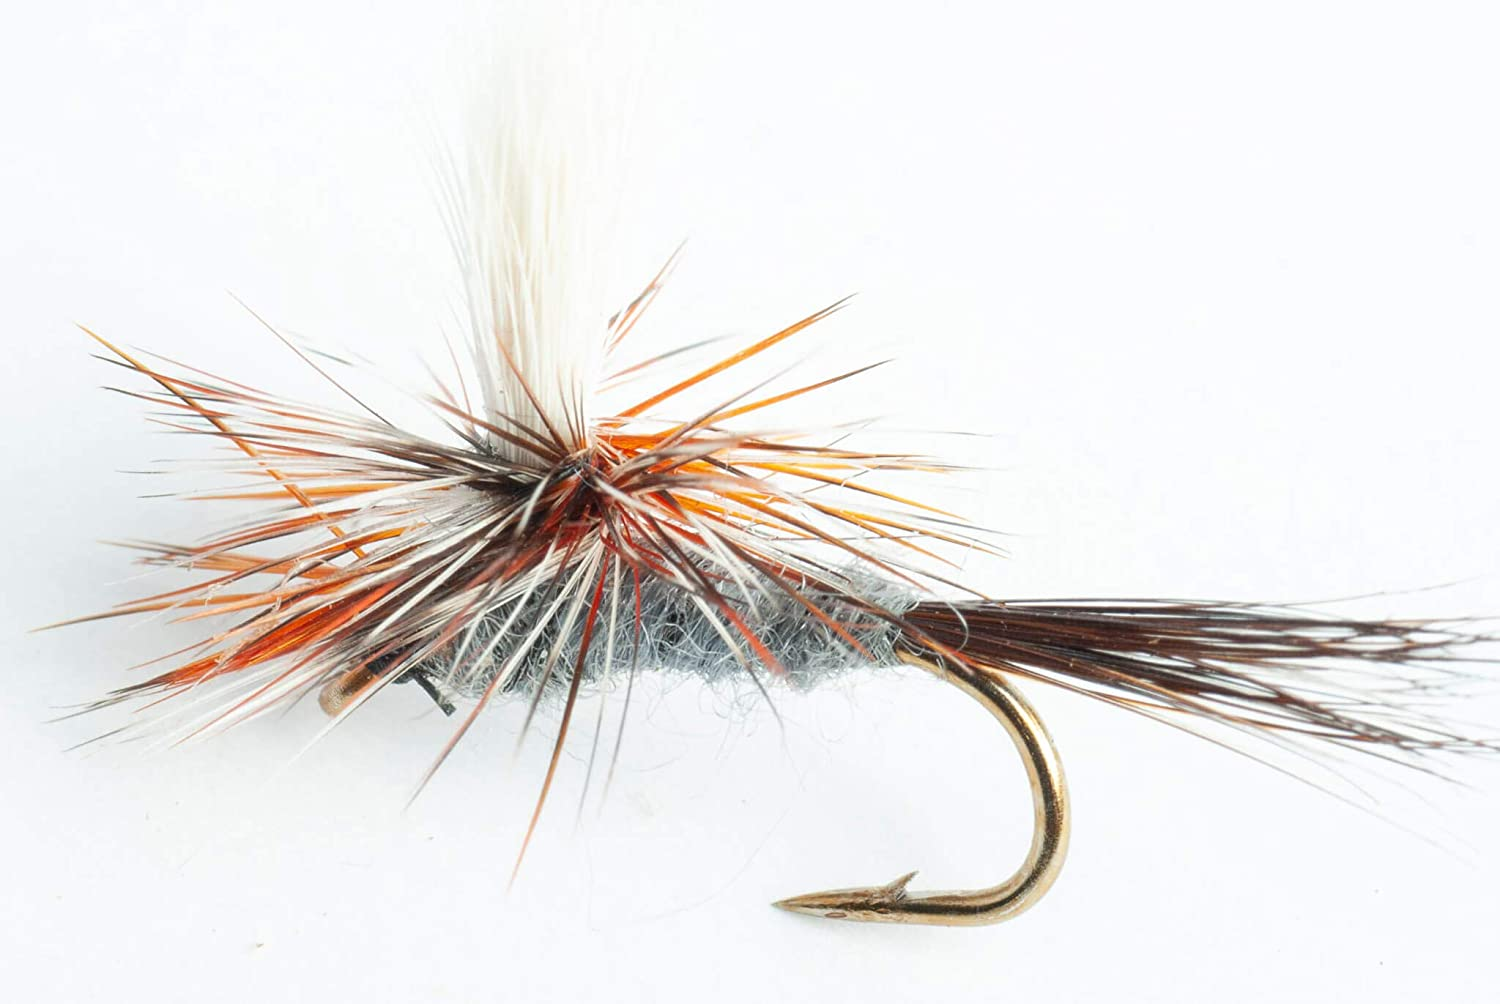 PARACHUTE PHEASANT TAIL Dry Trout Fishing Flies various options